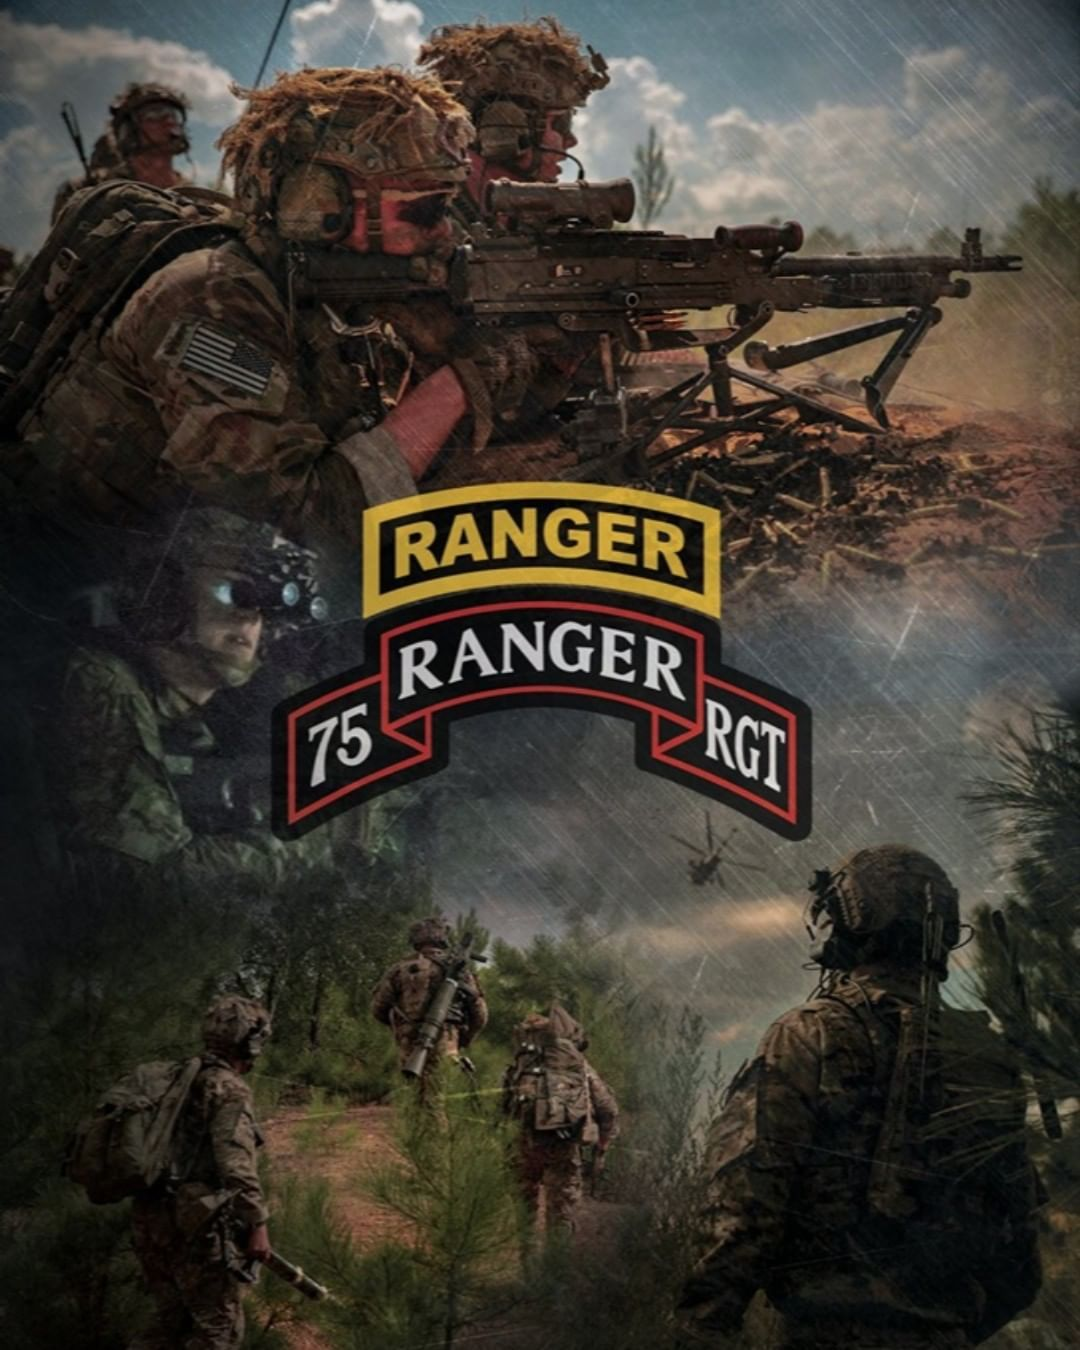 Pin by Brad Hughes on Military (With images) 75th ranger